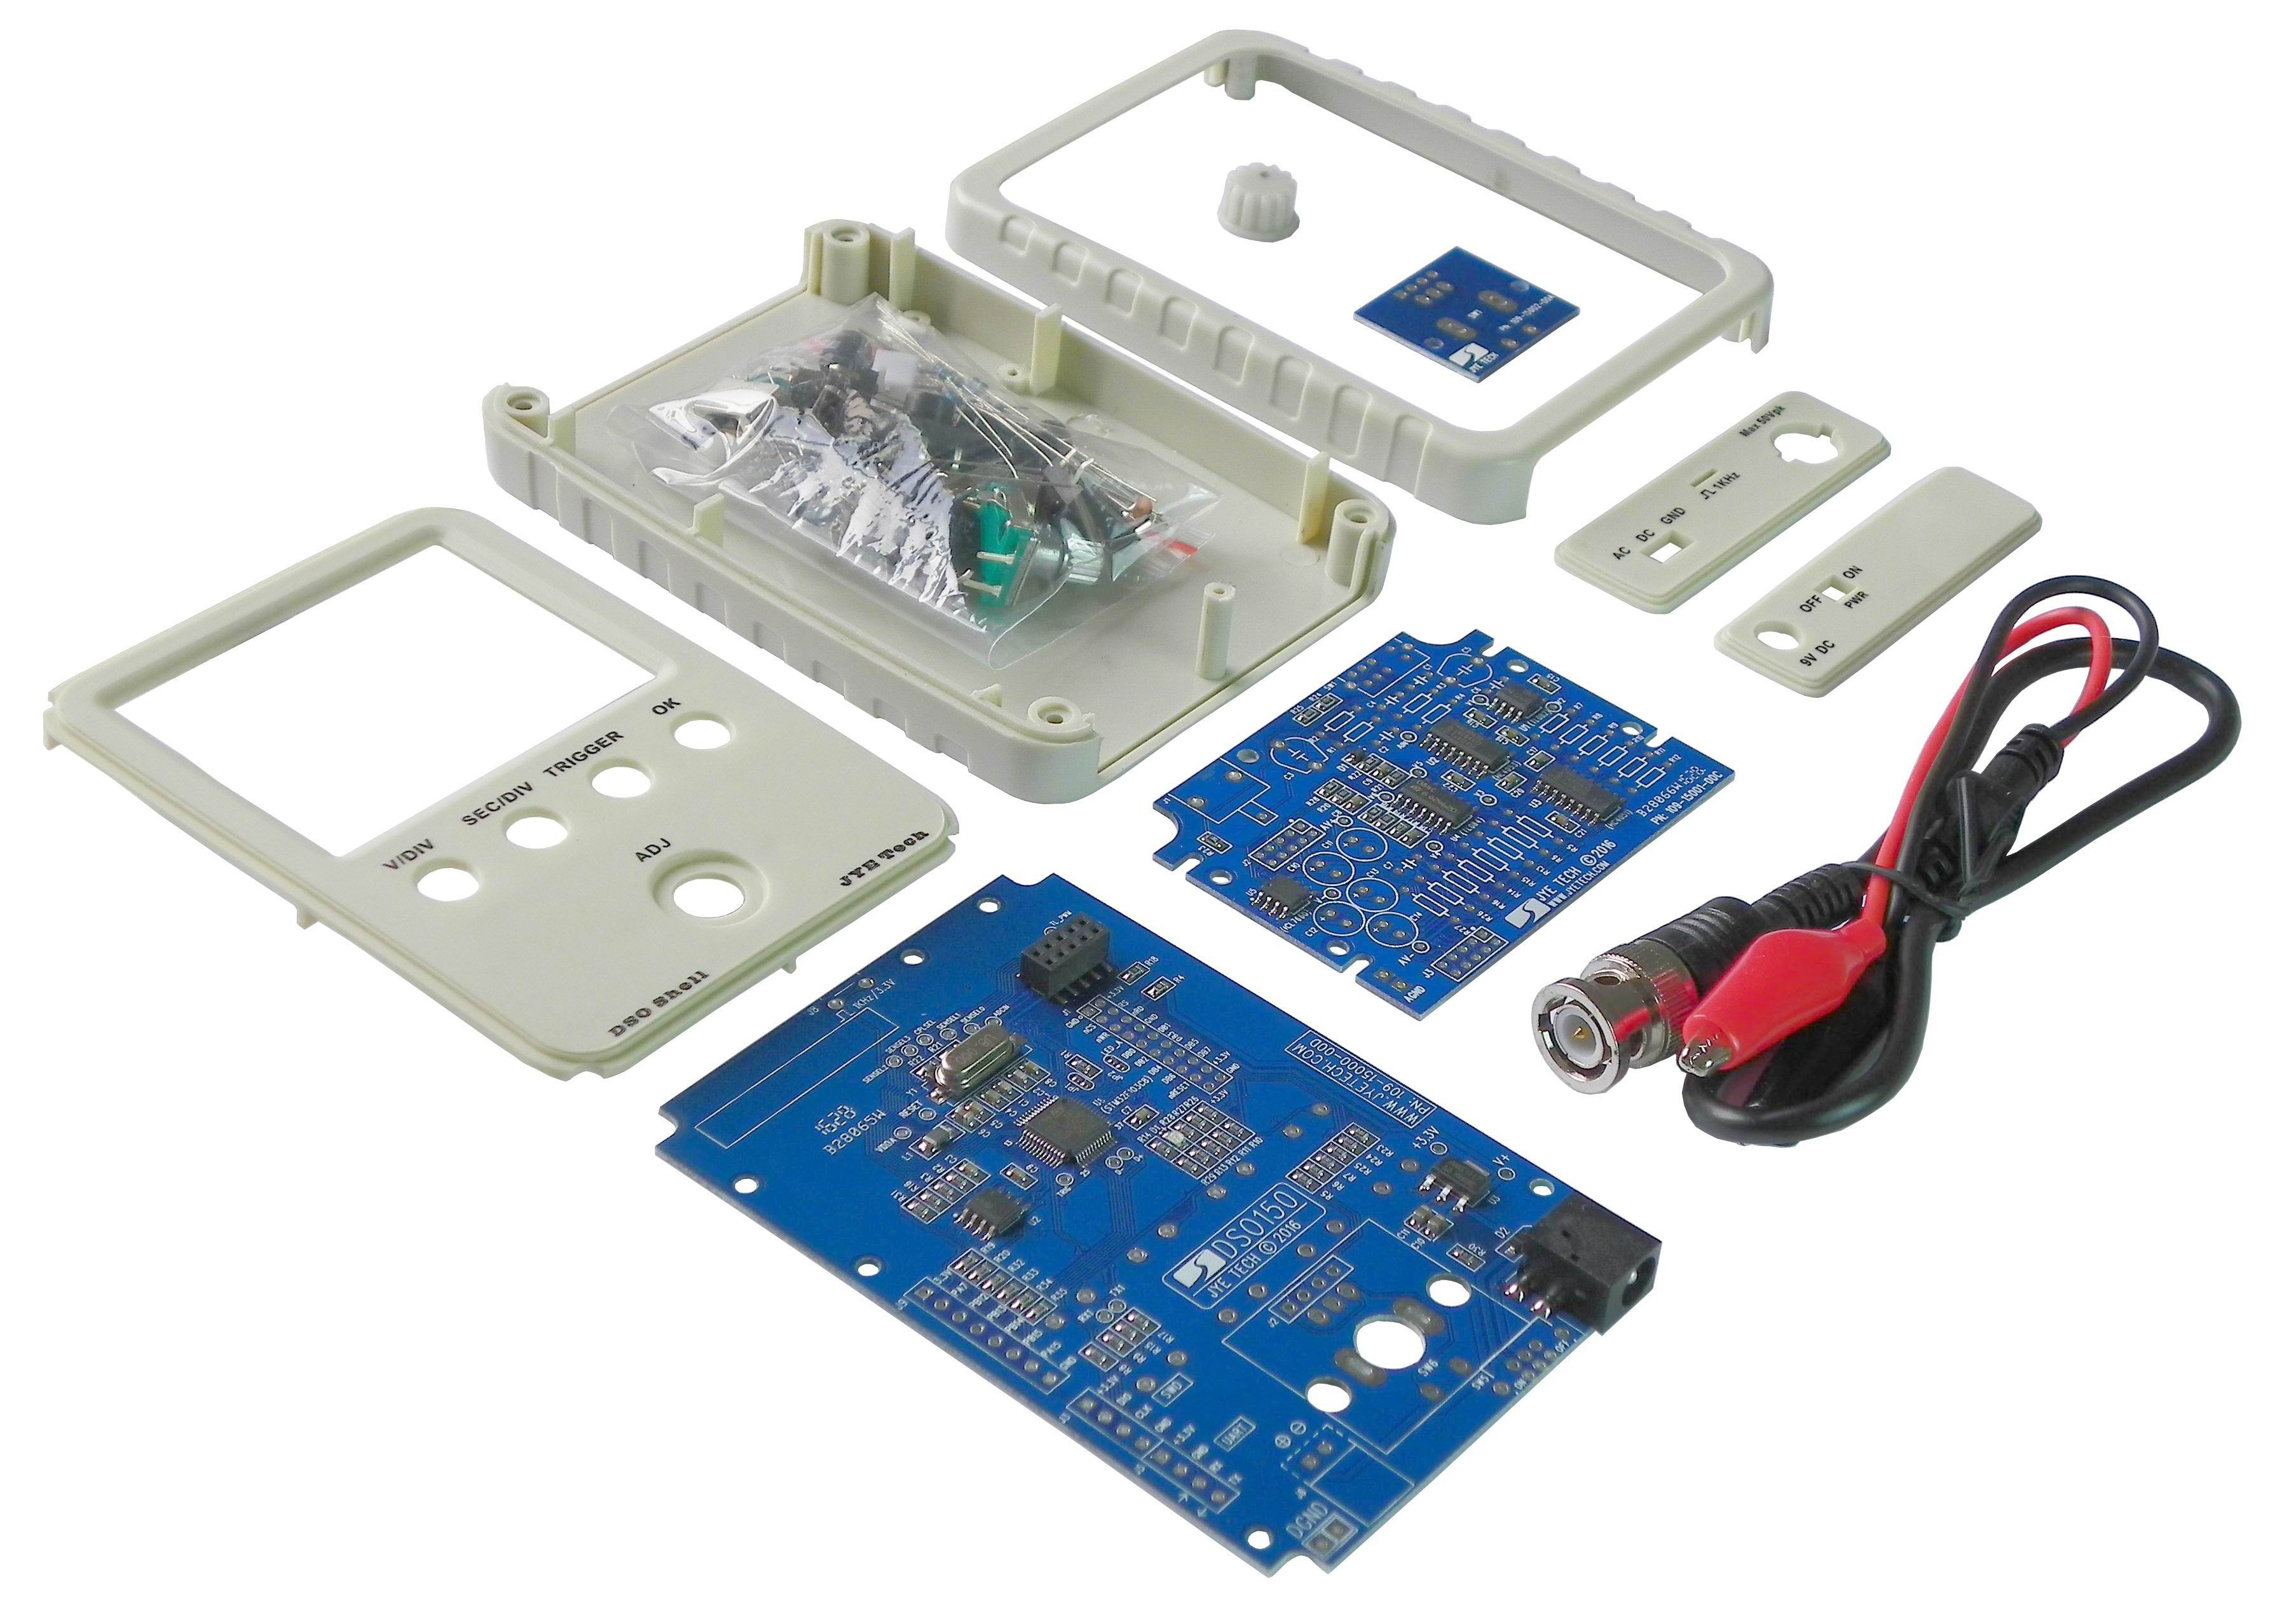 Jye Tech Diy Oscilloscopes Kits For Hobbyists Small Modifications In Firmware And Schematic Diagram Were Made By